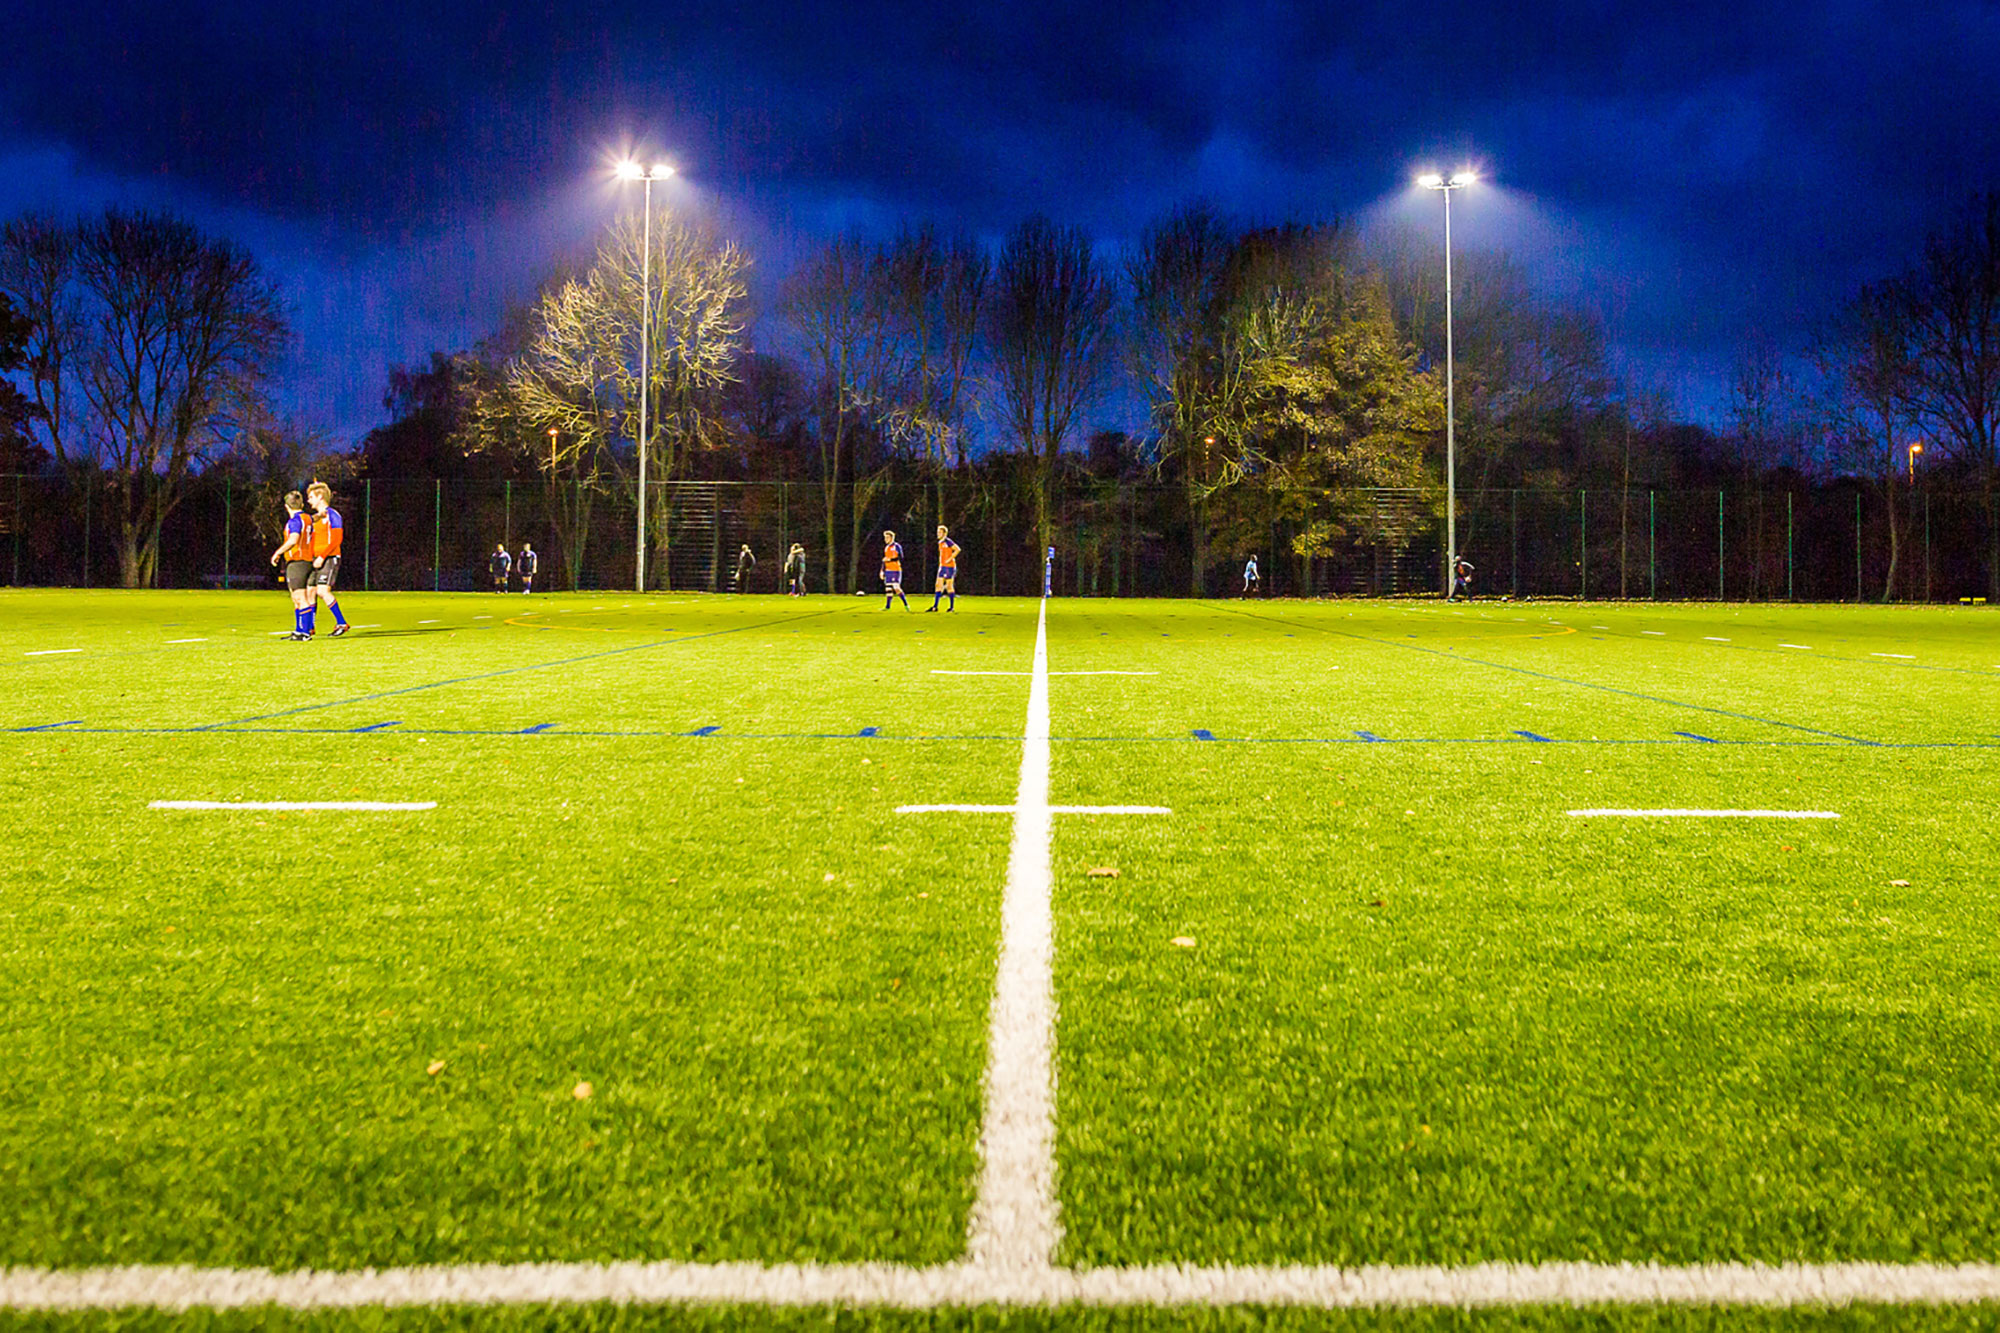 4G Rugby pitch at night time